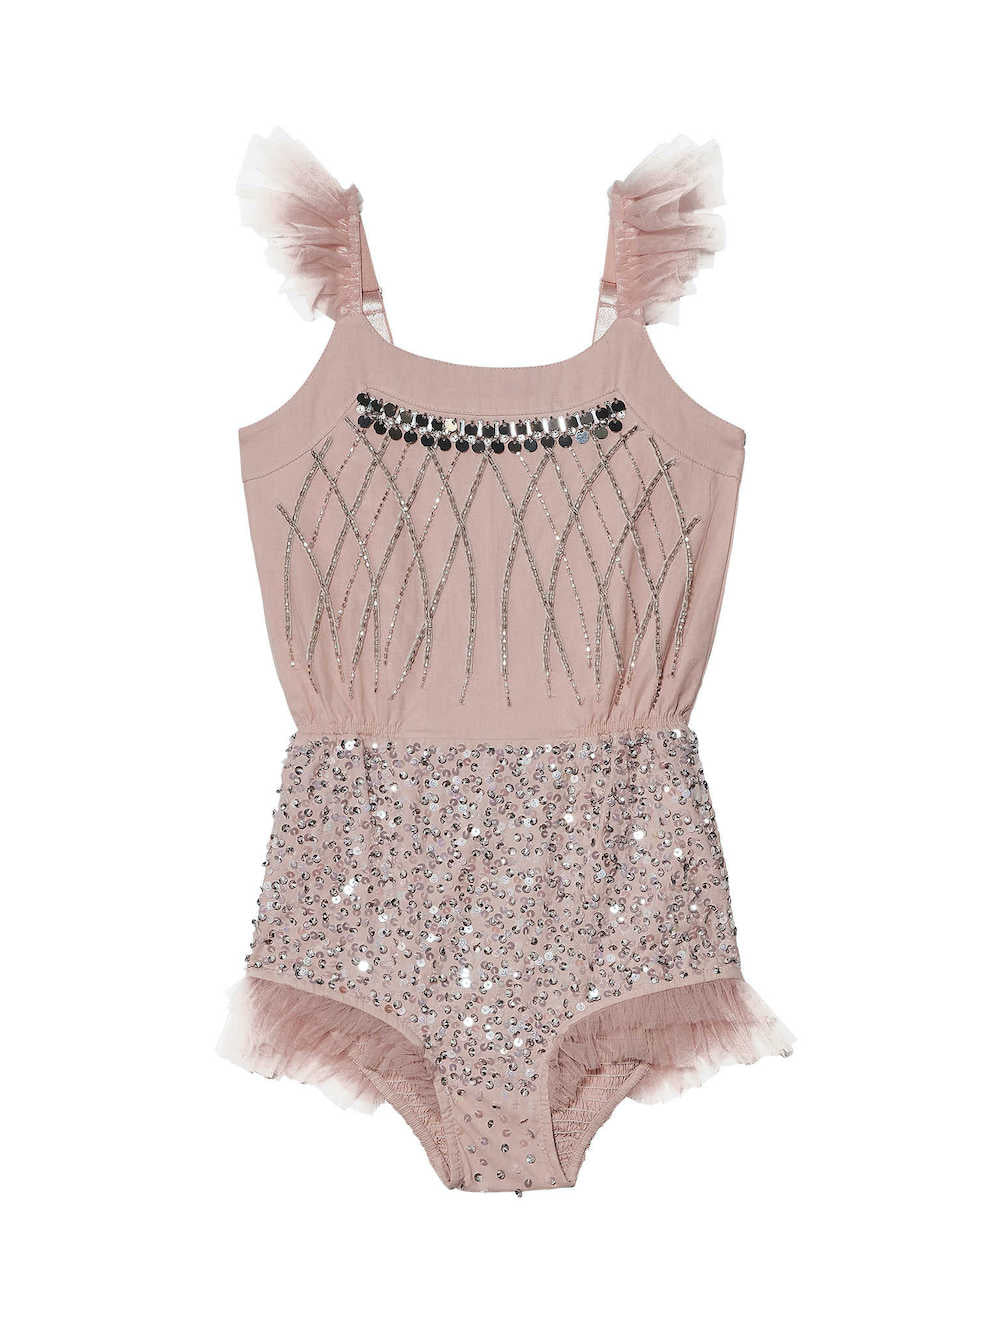 Tutu du Monde Showtime Bodysuit - Blush